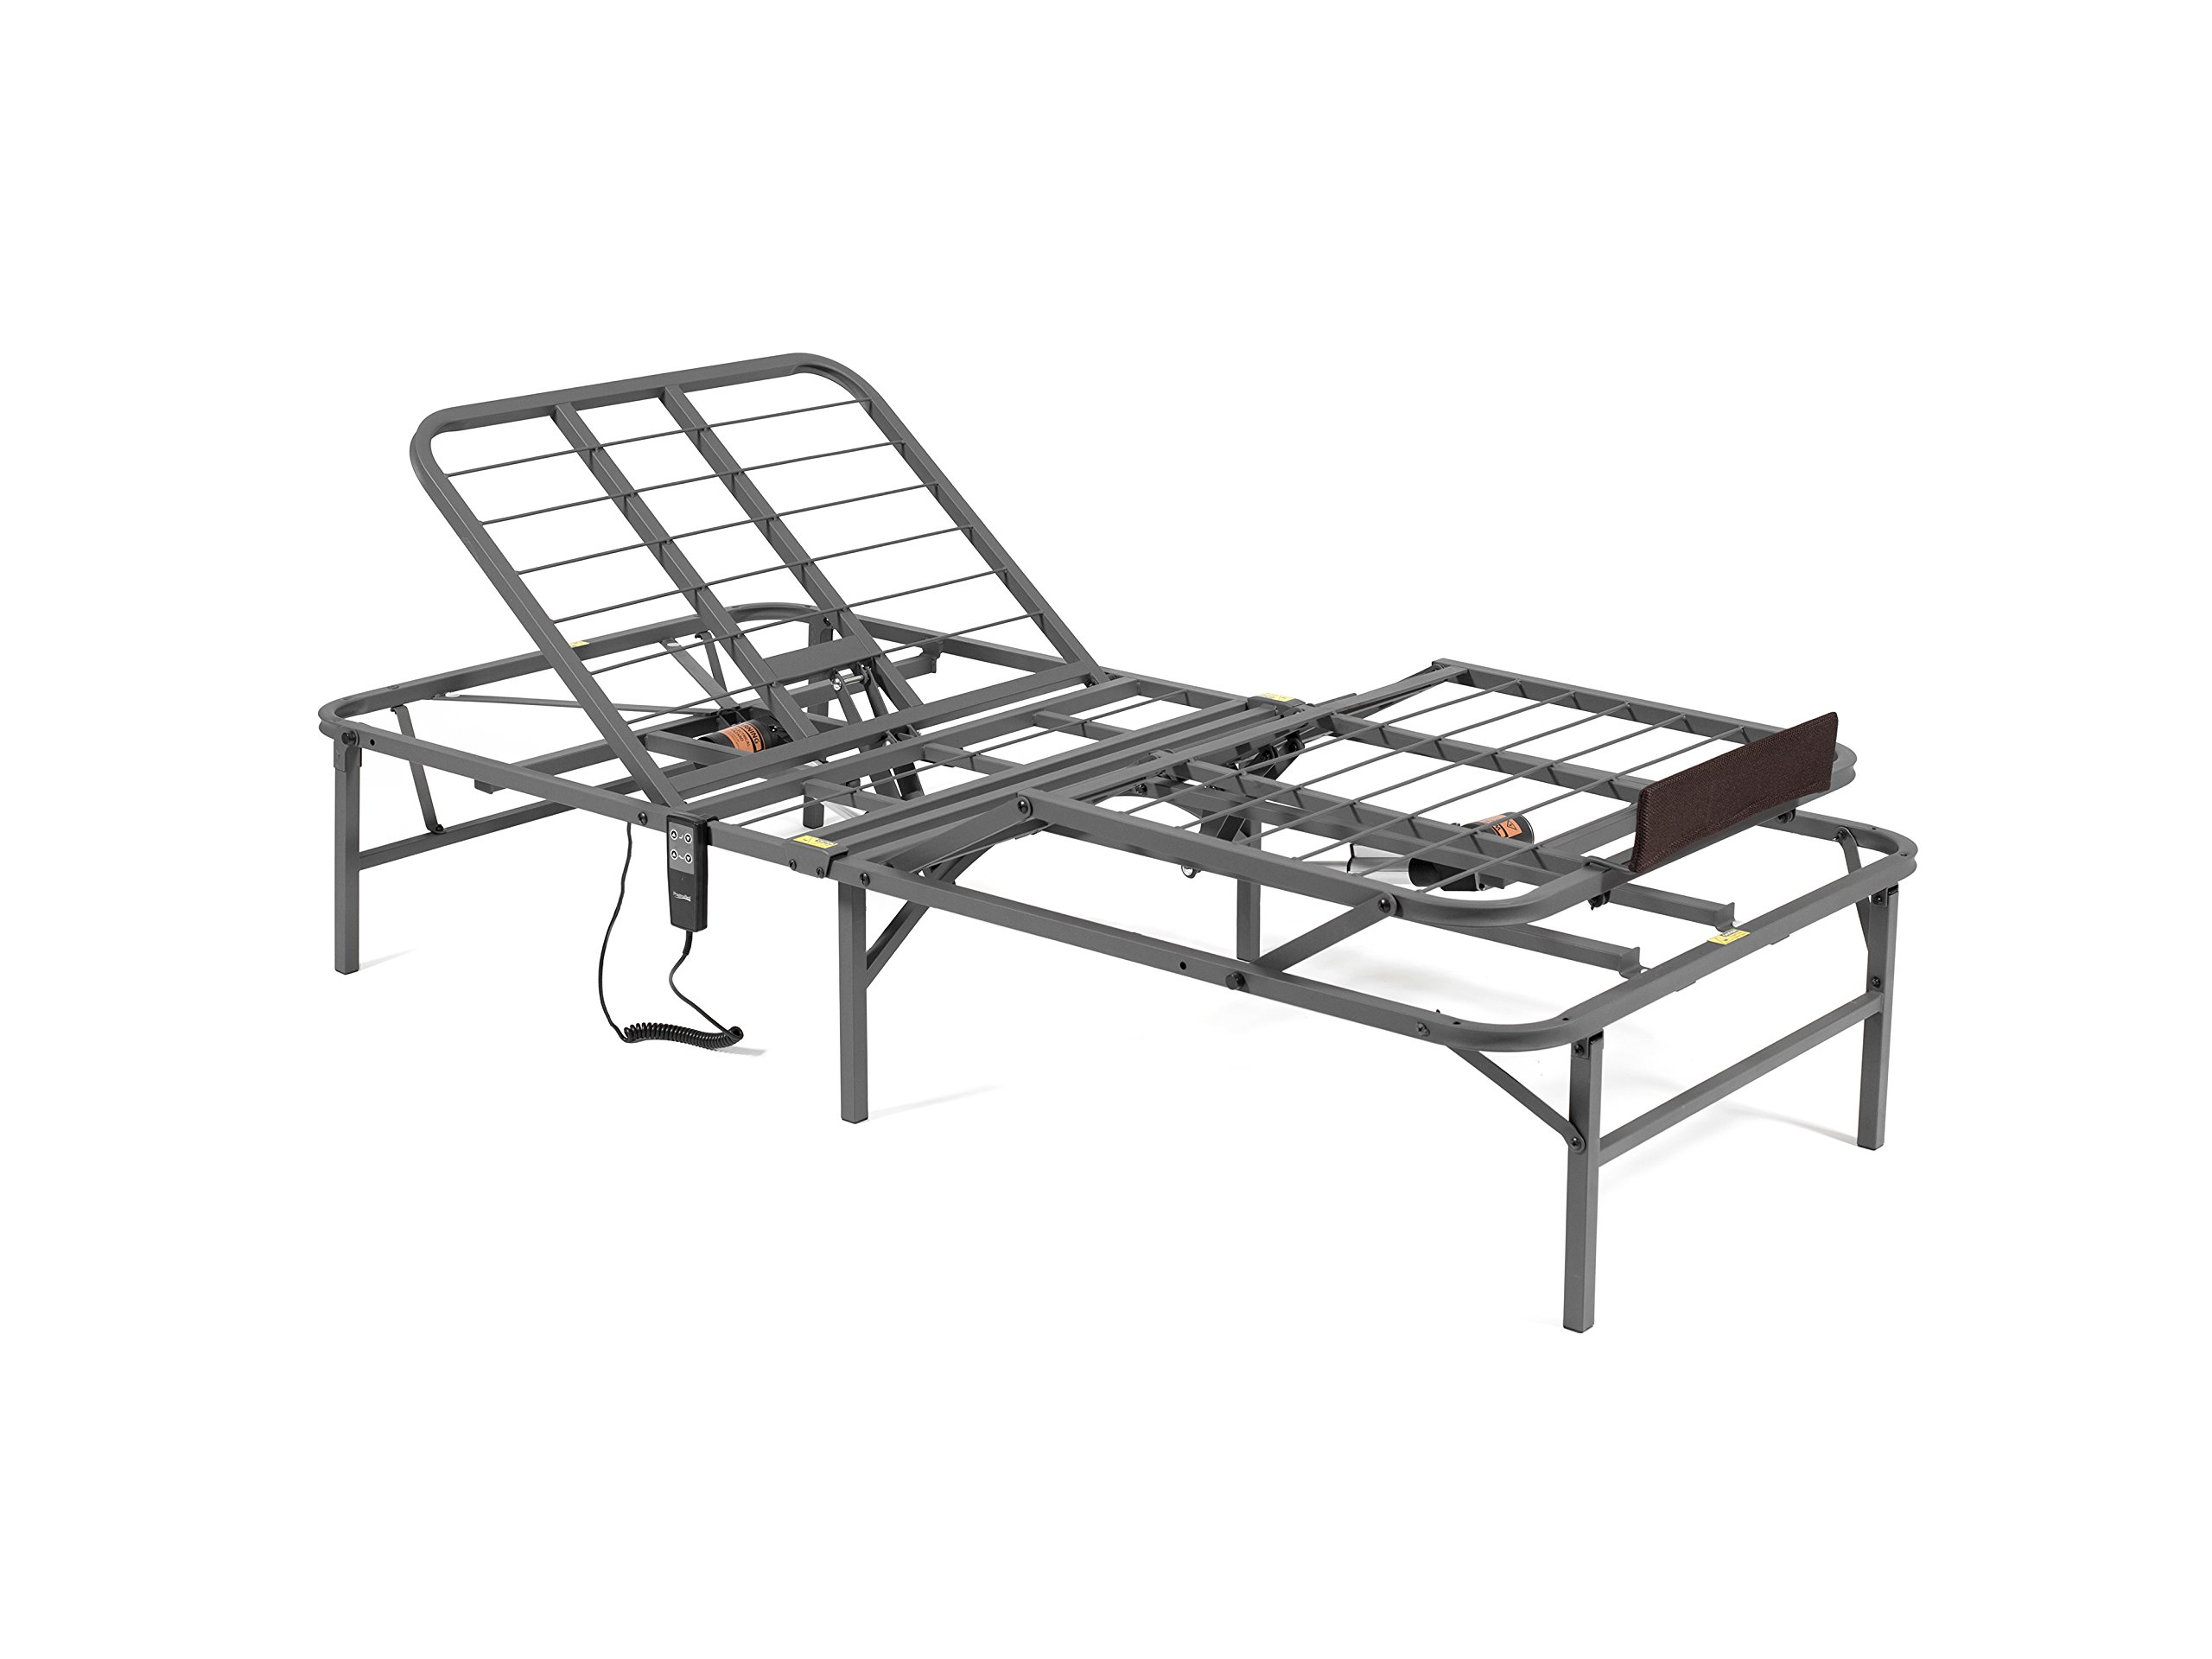 PragmaBed Pragmatic Adjustable Bed Frame, Head and Foot, Twin X-Large, Gray by PragmaBed